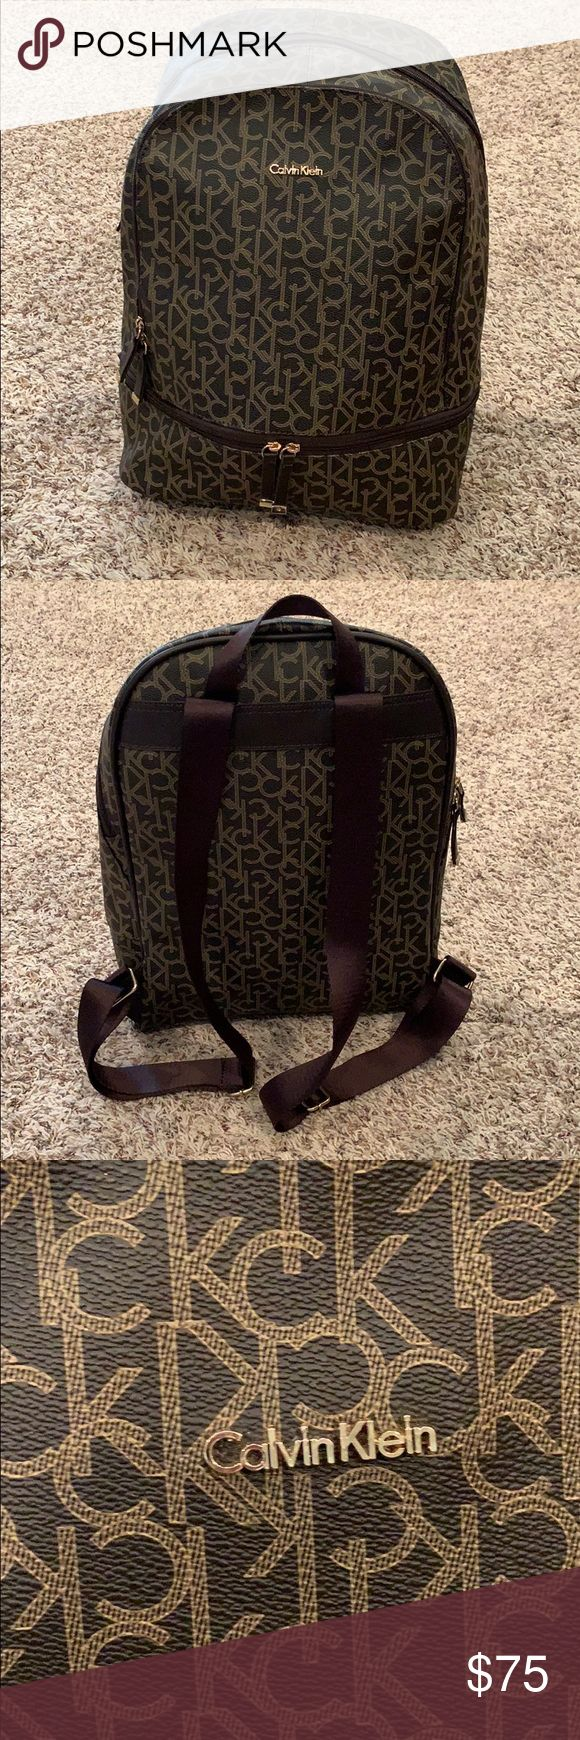 Calvin Klein Backpack Beautiful, larger sized Calv…